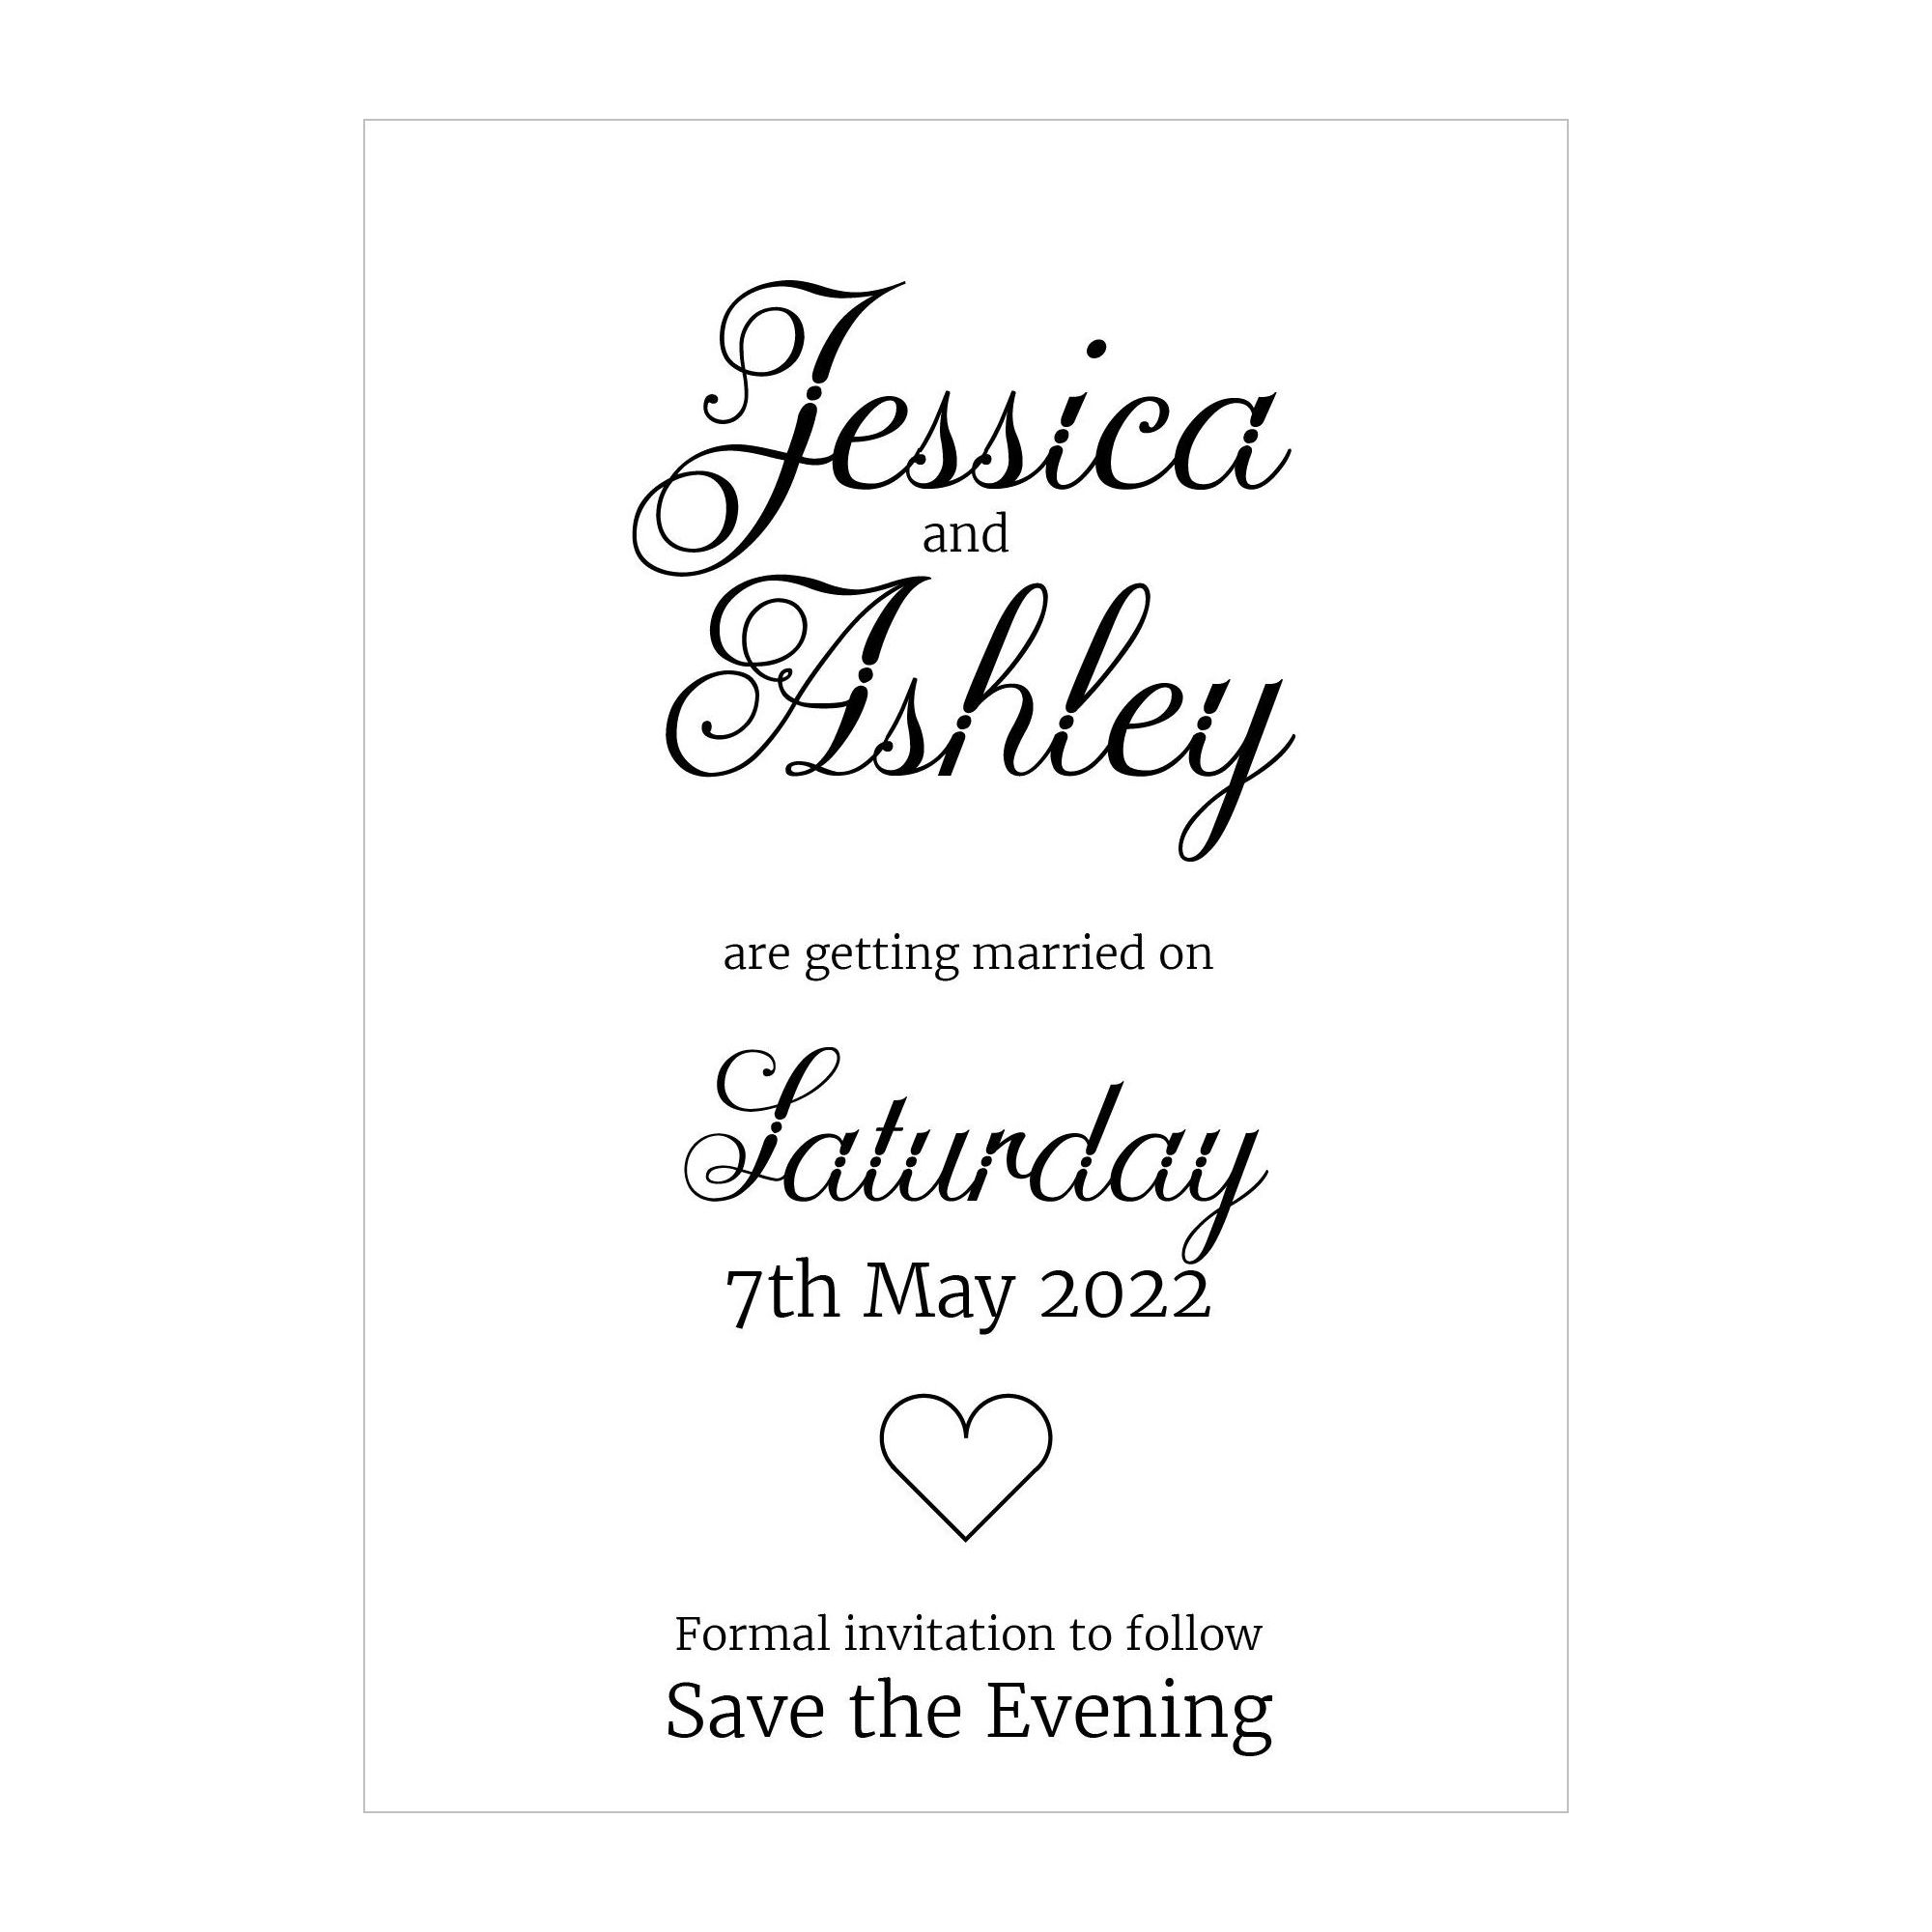 Recycled White Classic Swirled Decorative Save the Evening Cards